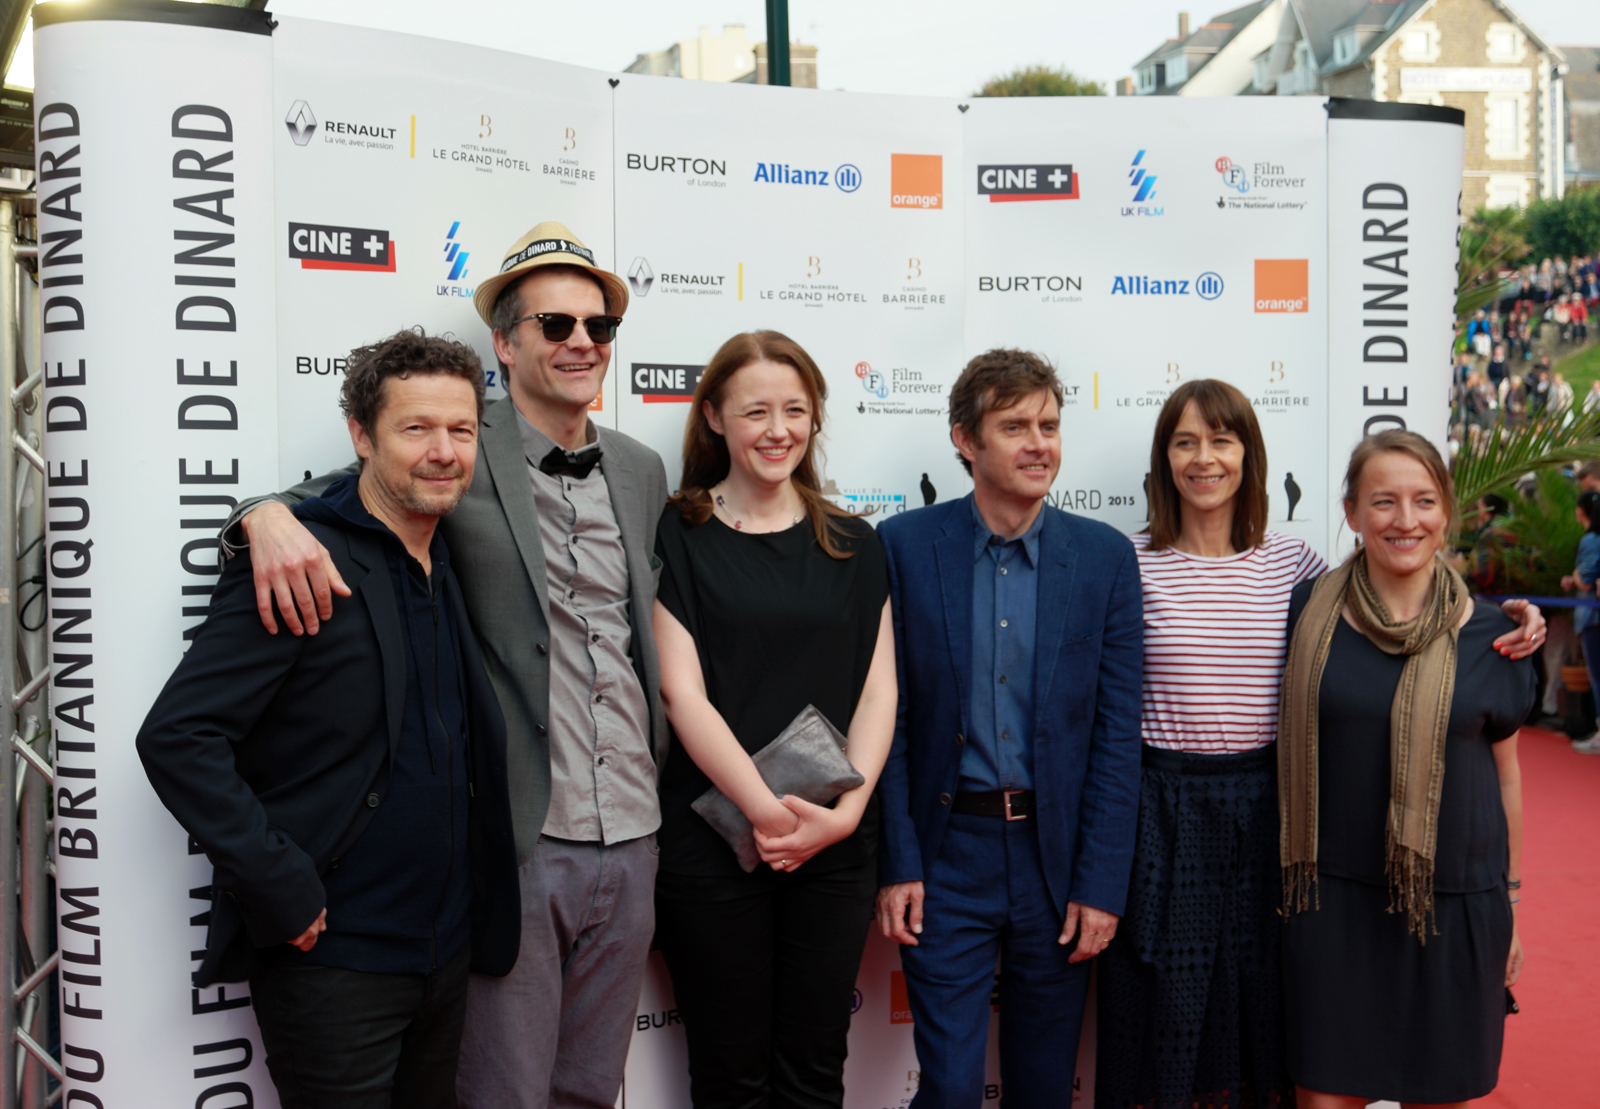 Équipe du film Couple in a Hole movie crew Tom Geens Paul Higgins Jérôme Kircher Kate Dickie golden Hitchcock d'or 2015 photo by usofparis